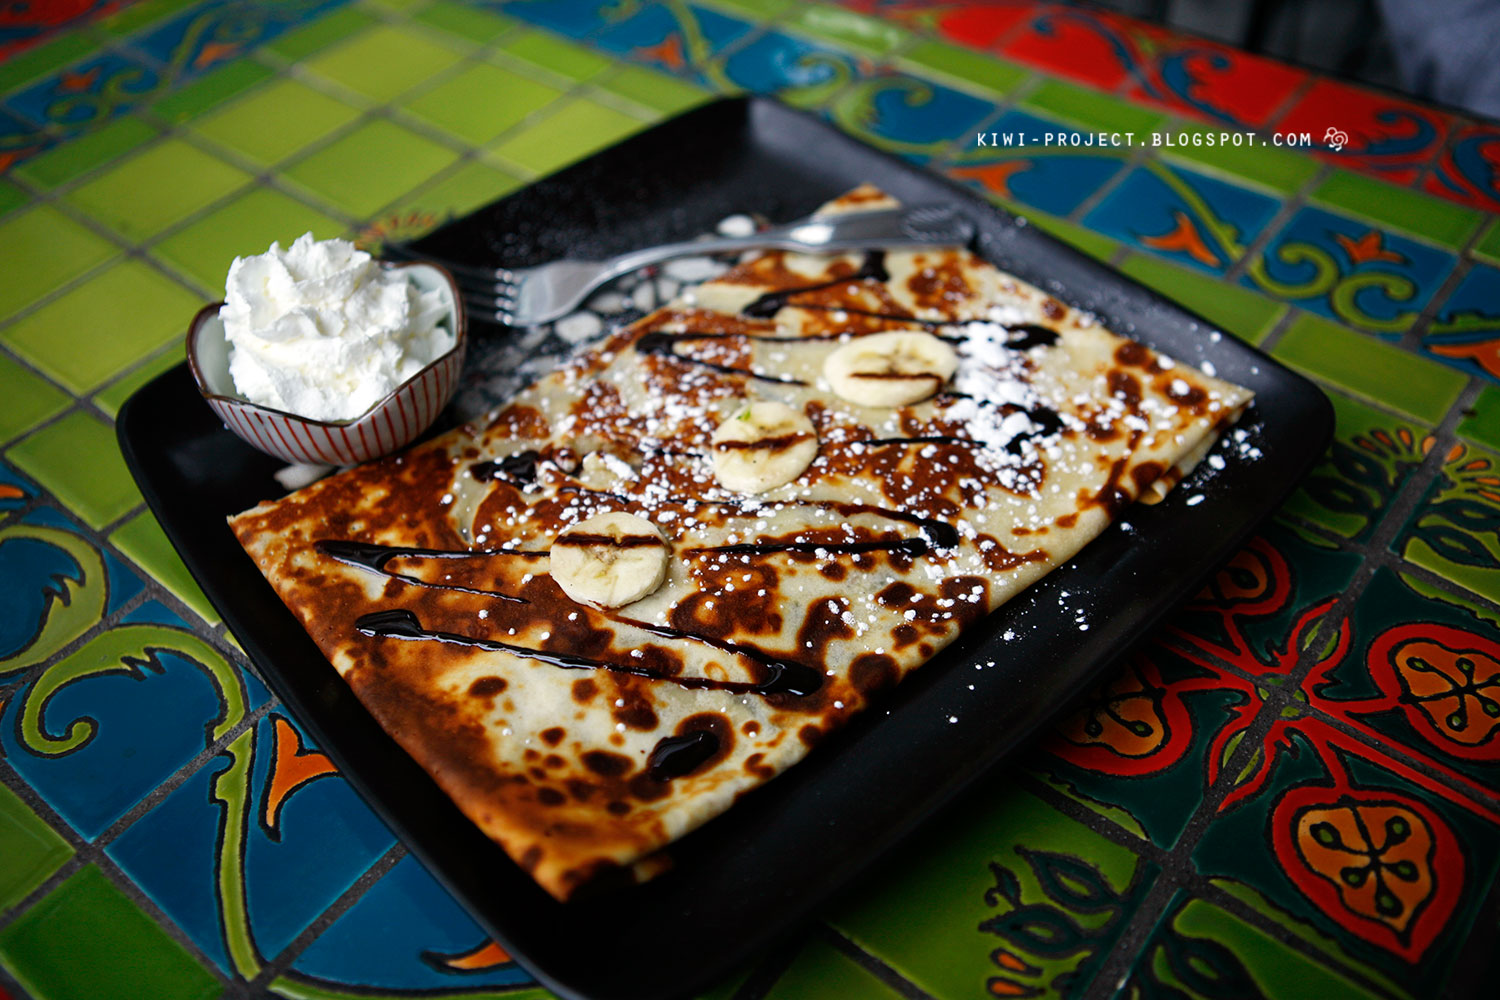 banana nutella crepe banana with nutella topped with whipped cream